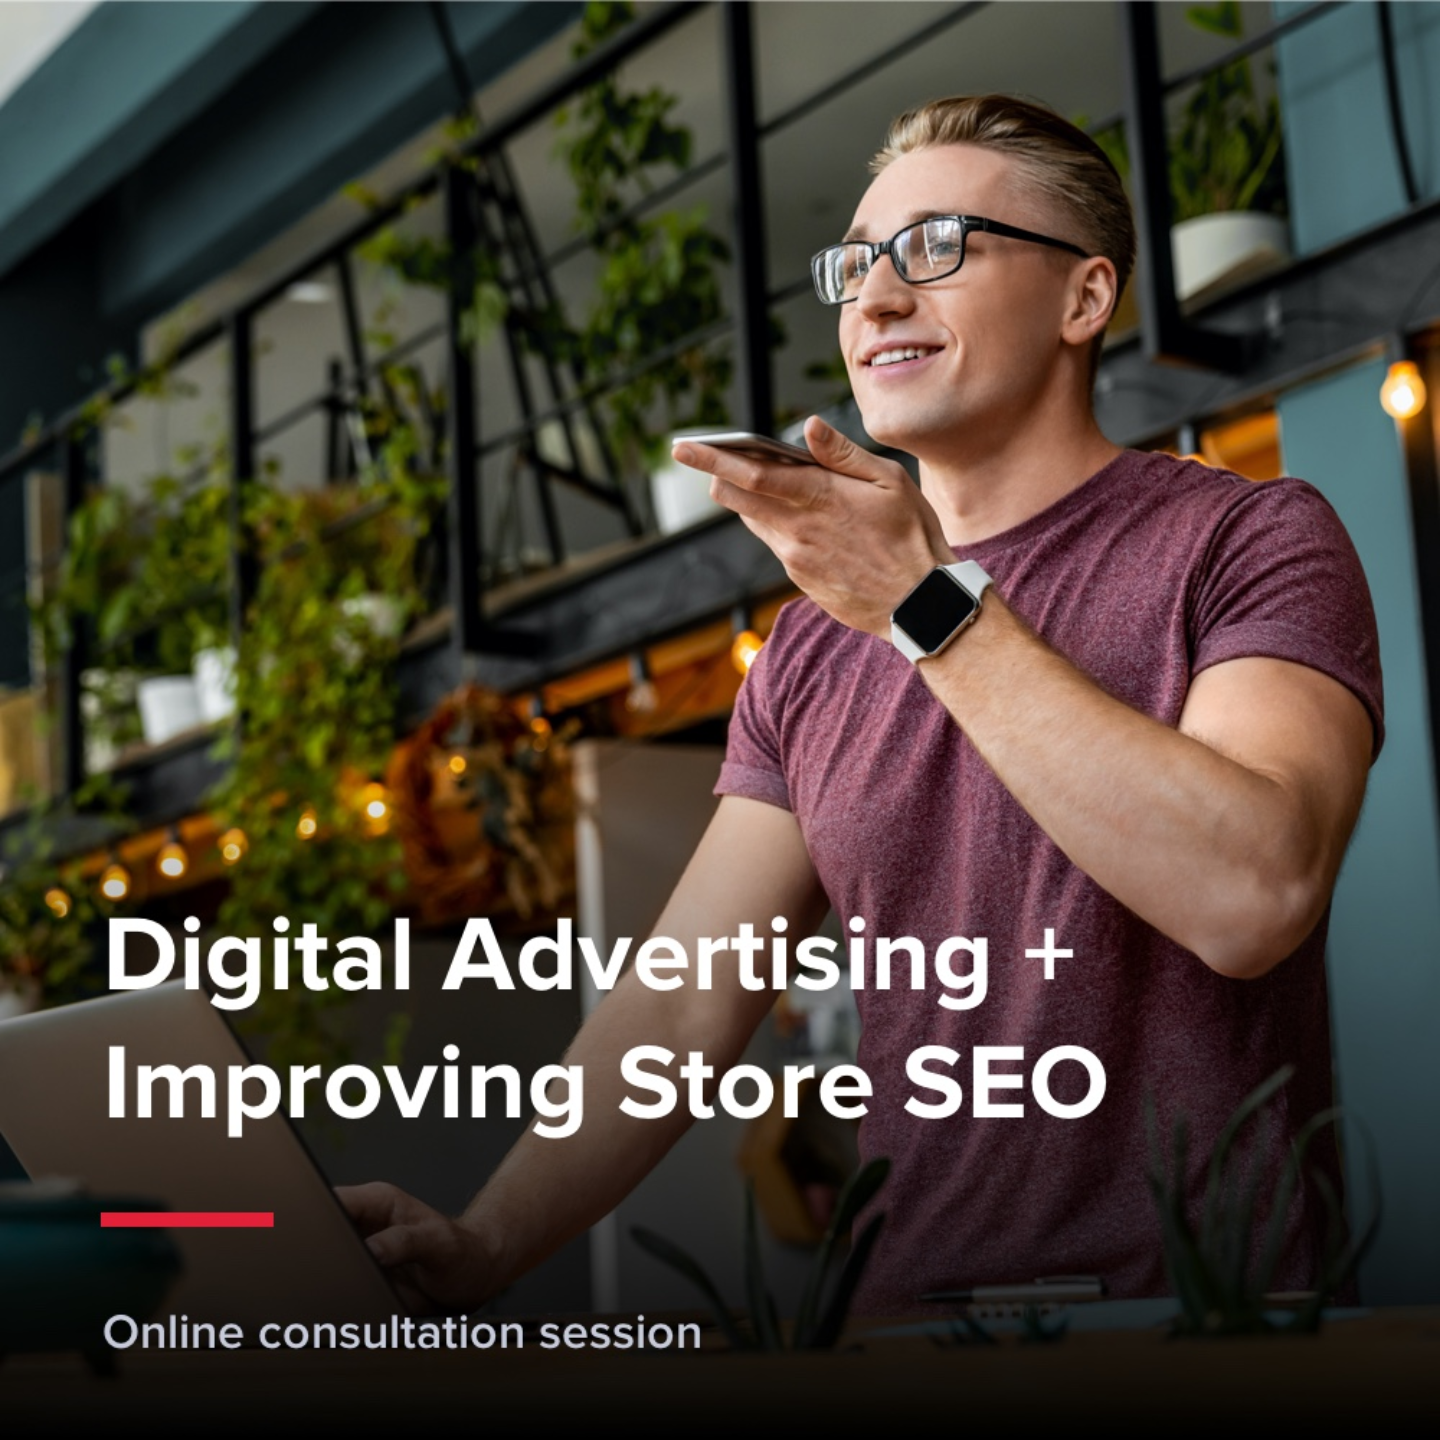 Bundle Package 3 -  Digital Advertising + Improving Store SEO